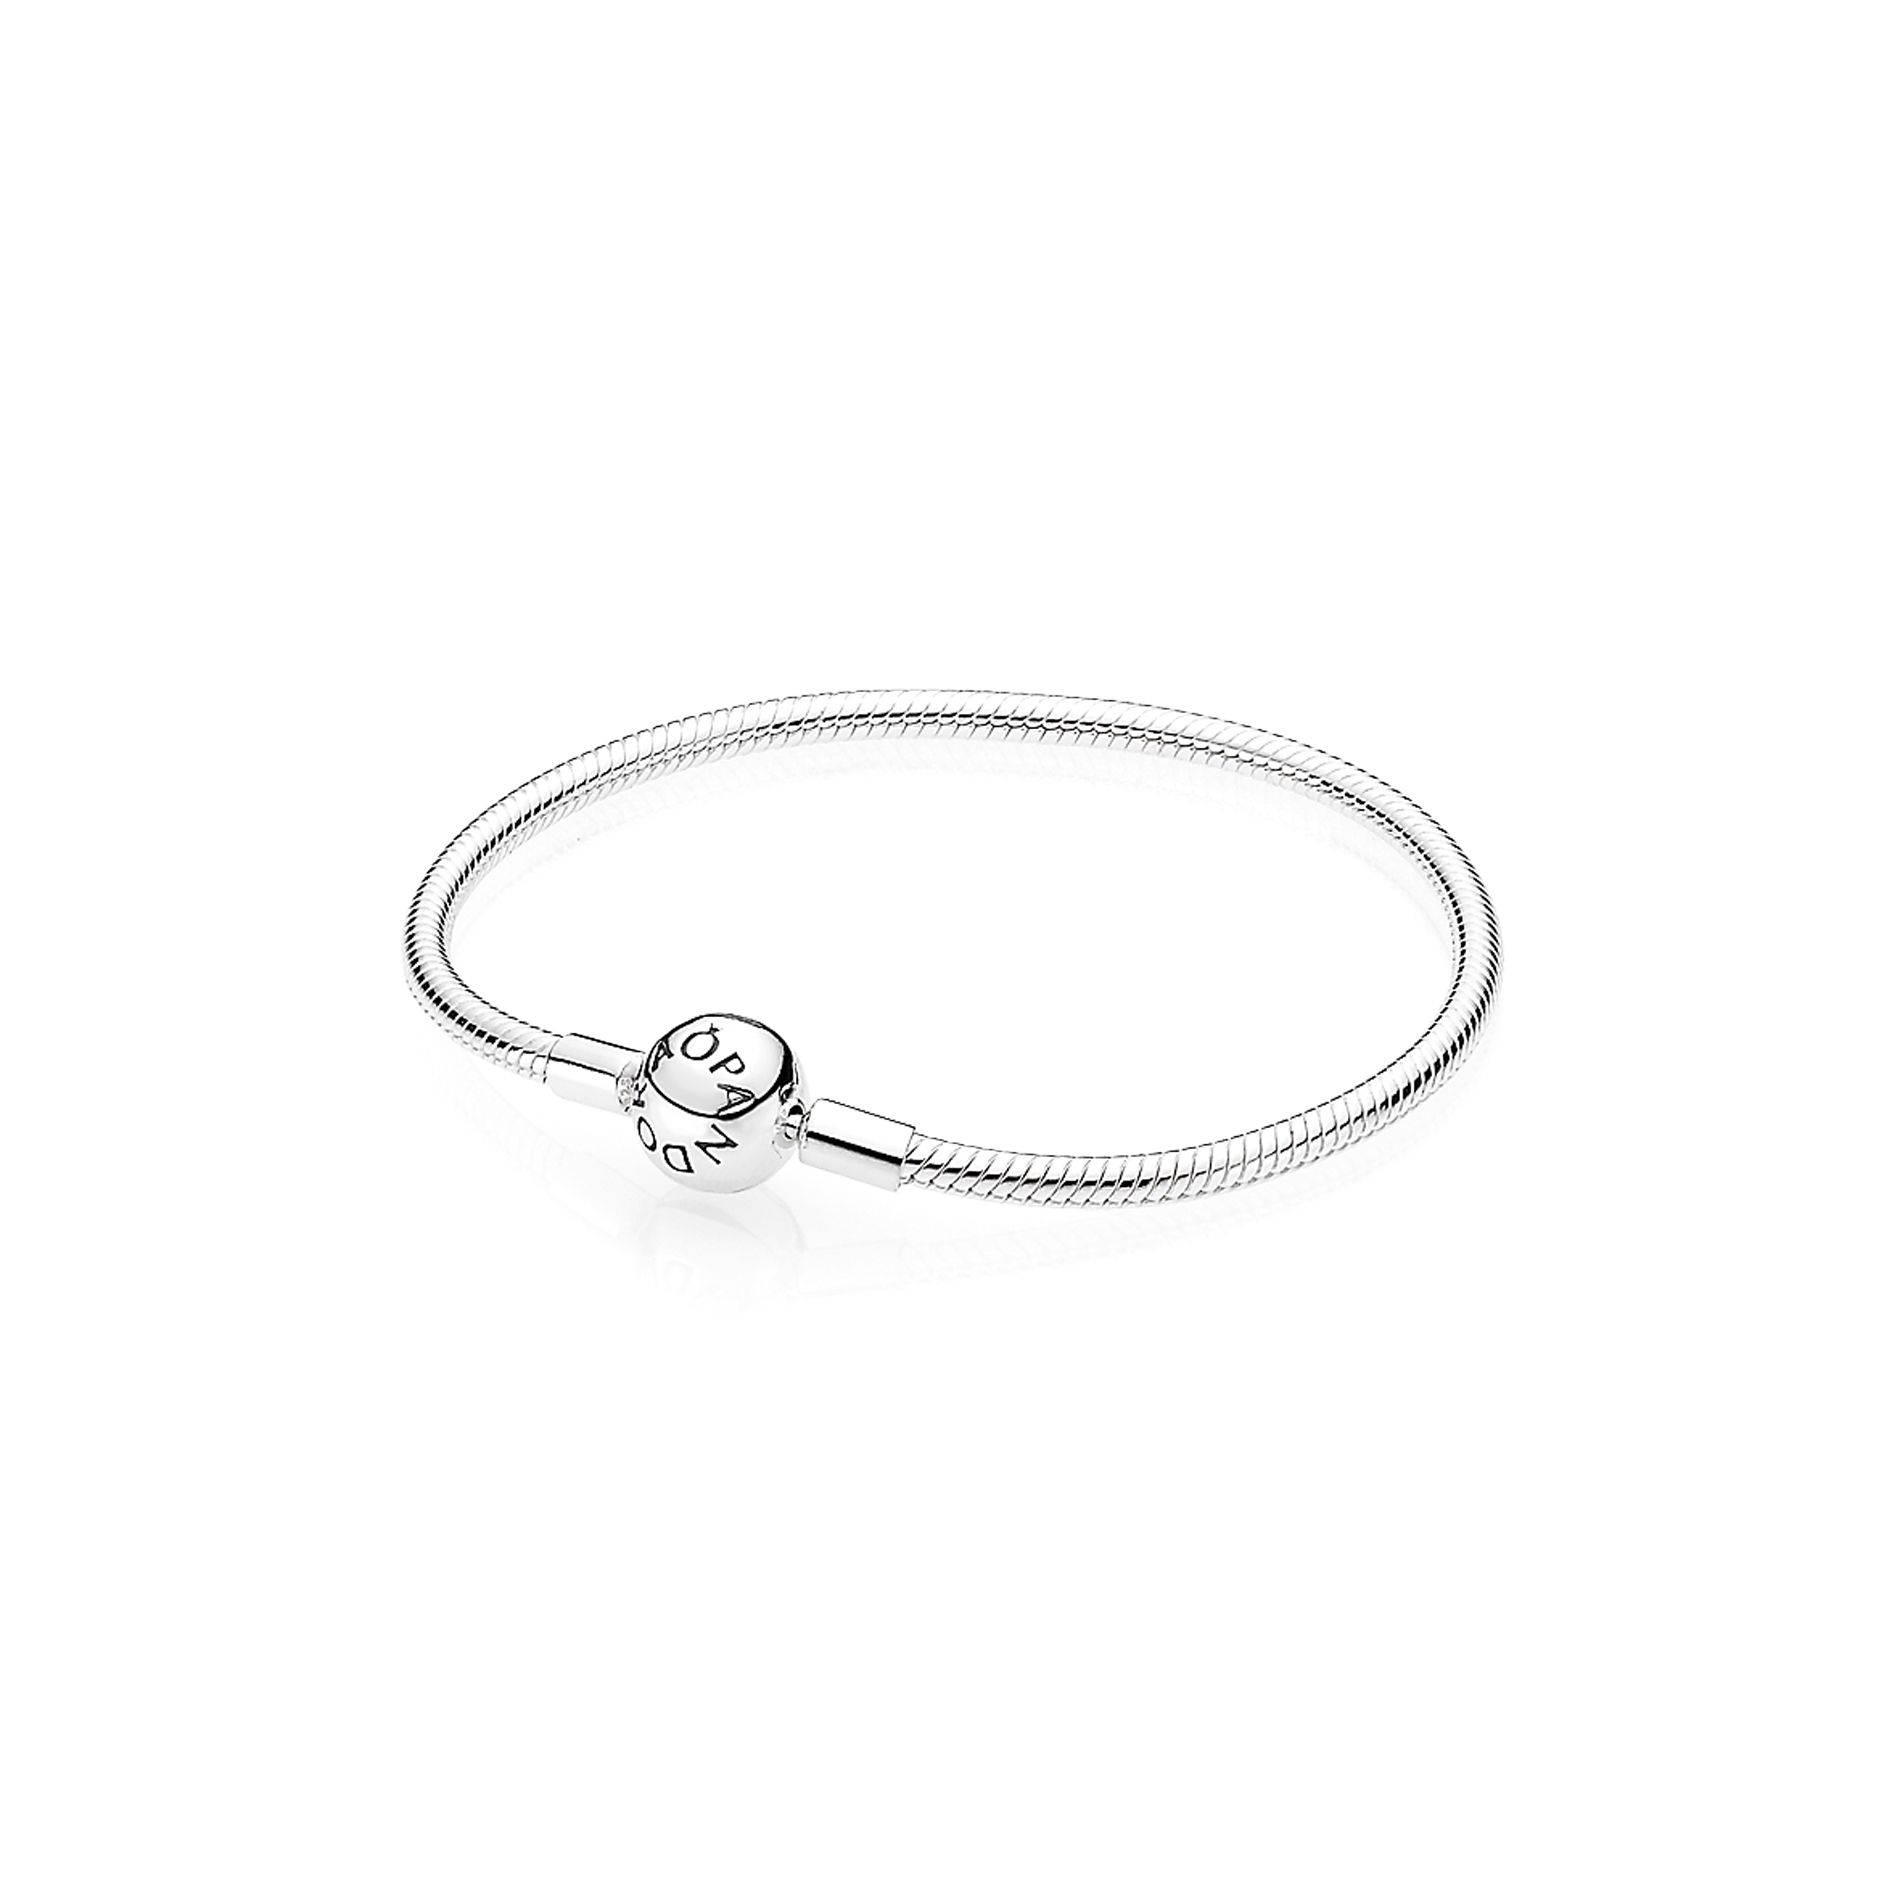 bracelet special photo you charm make bracelets with pandora one charms your compatible for pin